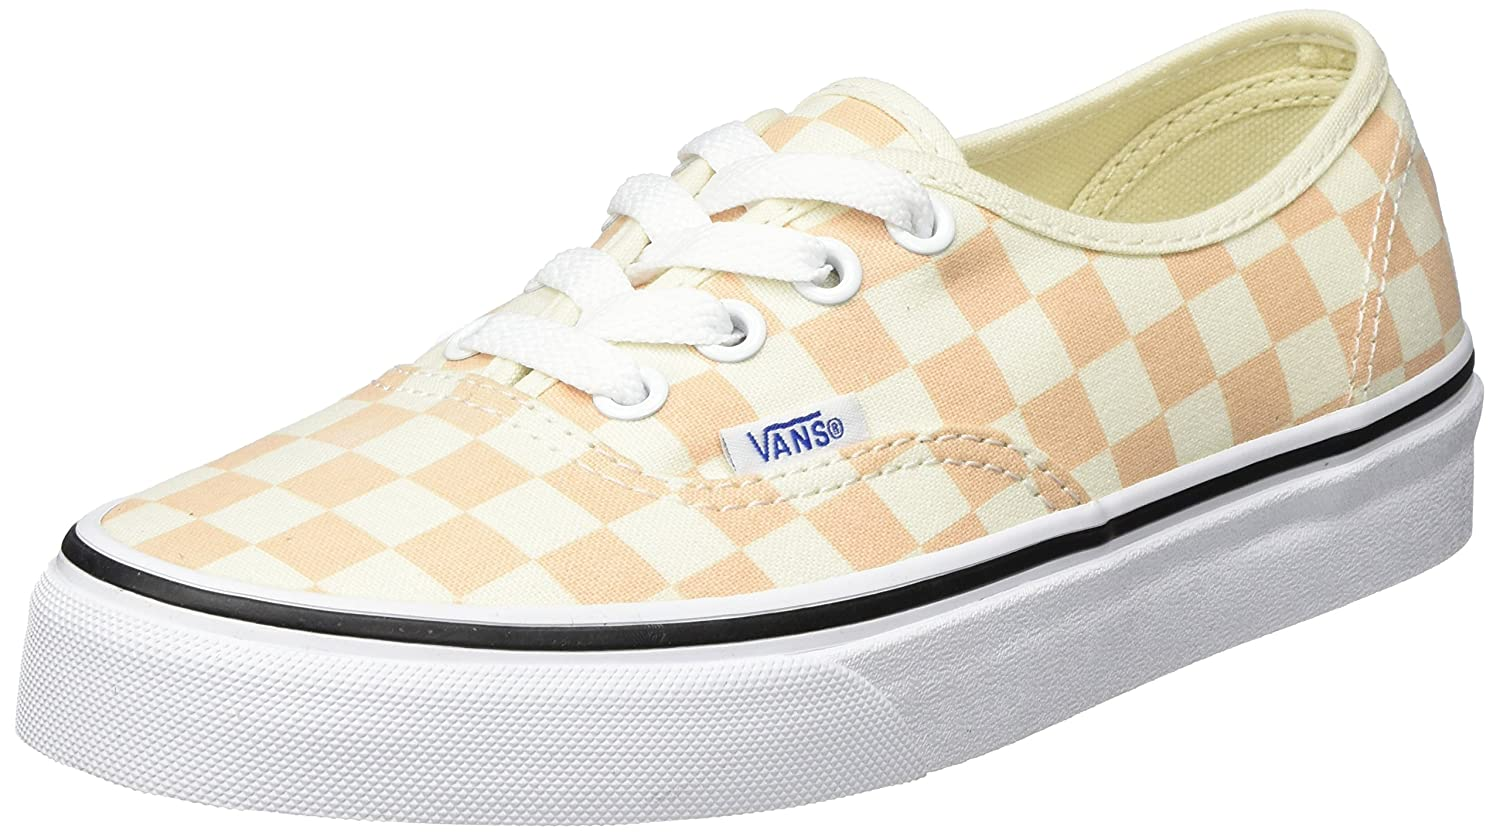 【★安心の定価販売★】 [バンズ] スニーカー 4.5 Women's AUTHENTIC (Pig Suede) 6 VN0A38EMU5O レディース B076CRHD1S (Checkerboard) 6 M US Women/ 4.5 M US Men|(Q8k) (Checkerboard) Apricot Ice/Classic White (Q8k) (Checkerboard) Apricot Ice/Classic White 6 M US Women/ 4.5 M US Men, アンブロシア:de294b90 --- svecha37.ru